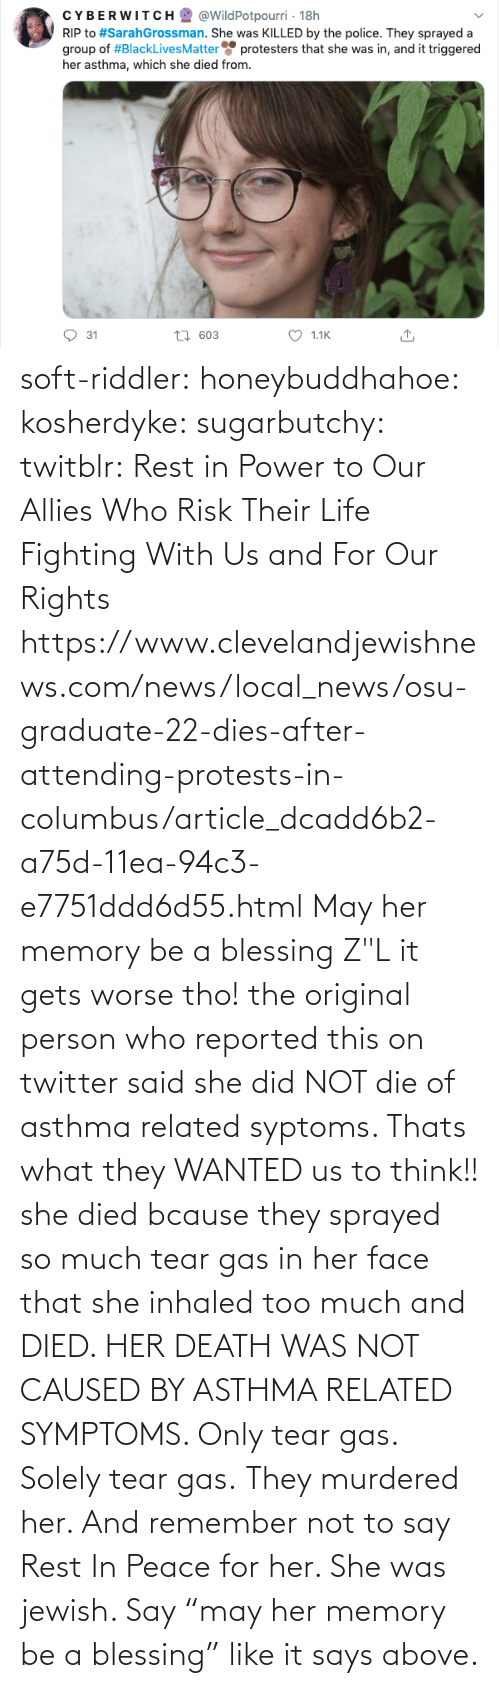 "her: soft-riddler:  honeybuddhahoe:  kosherdyke:  sugarbutchy:  twitblr: Rest in Power to Our Allies Who Risk Their Life Fighting With Us and For Our Rights https://www.clevelandjewishnews.com/news/local_news/osu-graduate-22-dies-after-attending-protests-in-columbus/article_dcadd6b2-a75d-11ea-94c3-e7751ddd6d55.html    May her memory be a blessing Z""L  it gets worse tho! the original person who reported this on twitter said she did NOT die of asthma related syptoms. Thats what they WANTED us to think!! she died bcause they sprayed so much tear gas in her face that she inhaled too much and DIED. HER DEATH WAS NOT CAUSED BY ASTHMA RELATED SYMPTOMS. Only tear gas. Solely tear gas. They murdered her.     And remember not to say Rest In Peace for her. She was jewish. Say ""may her memory be a blessing"" like it says above."